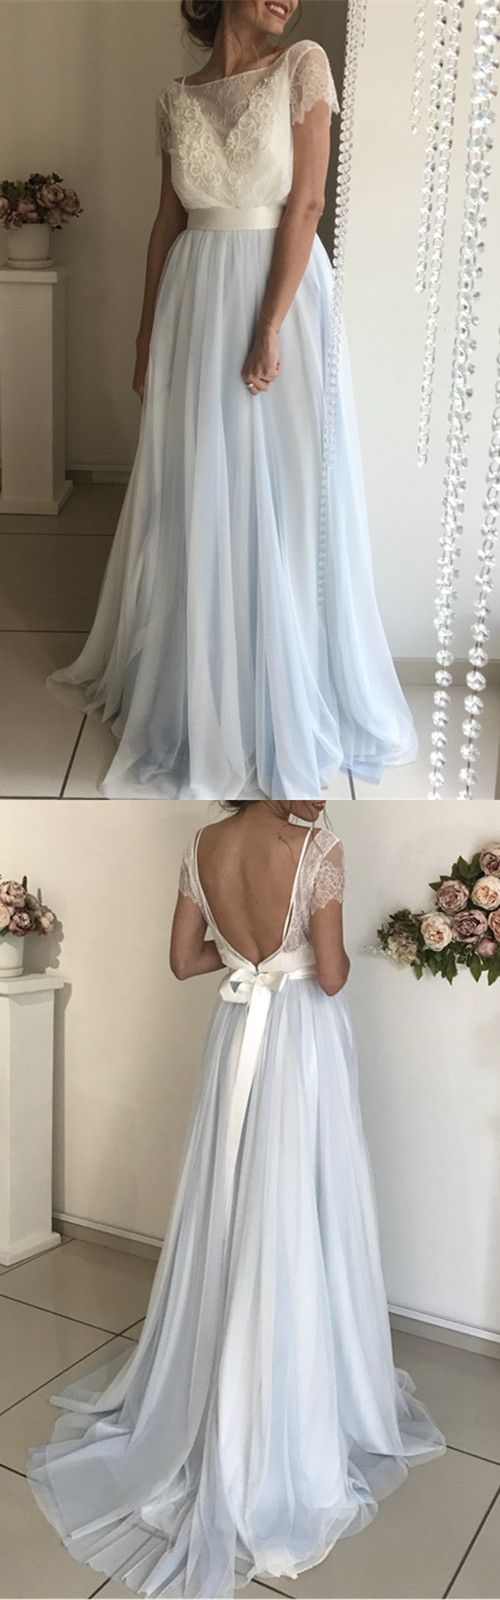 Modest Lace Short Sleeves Tulle Backless Wedding Dresses,D0191